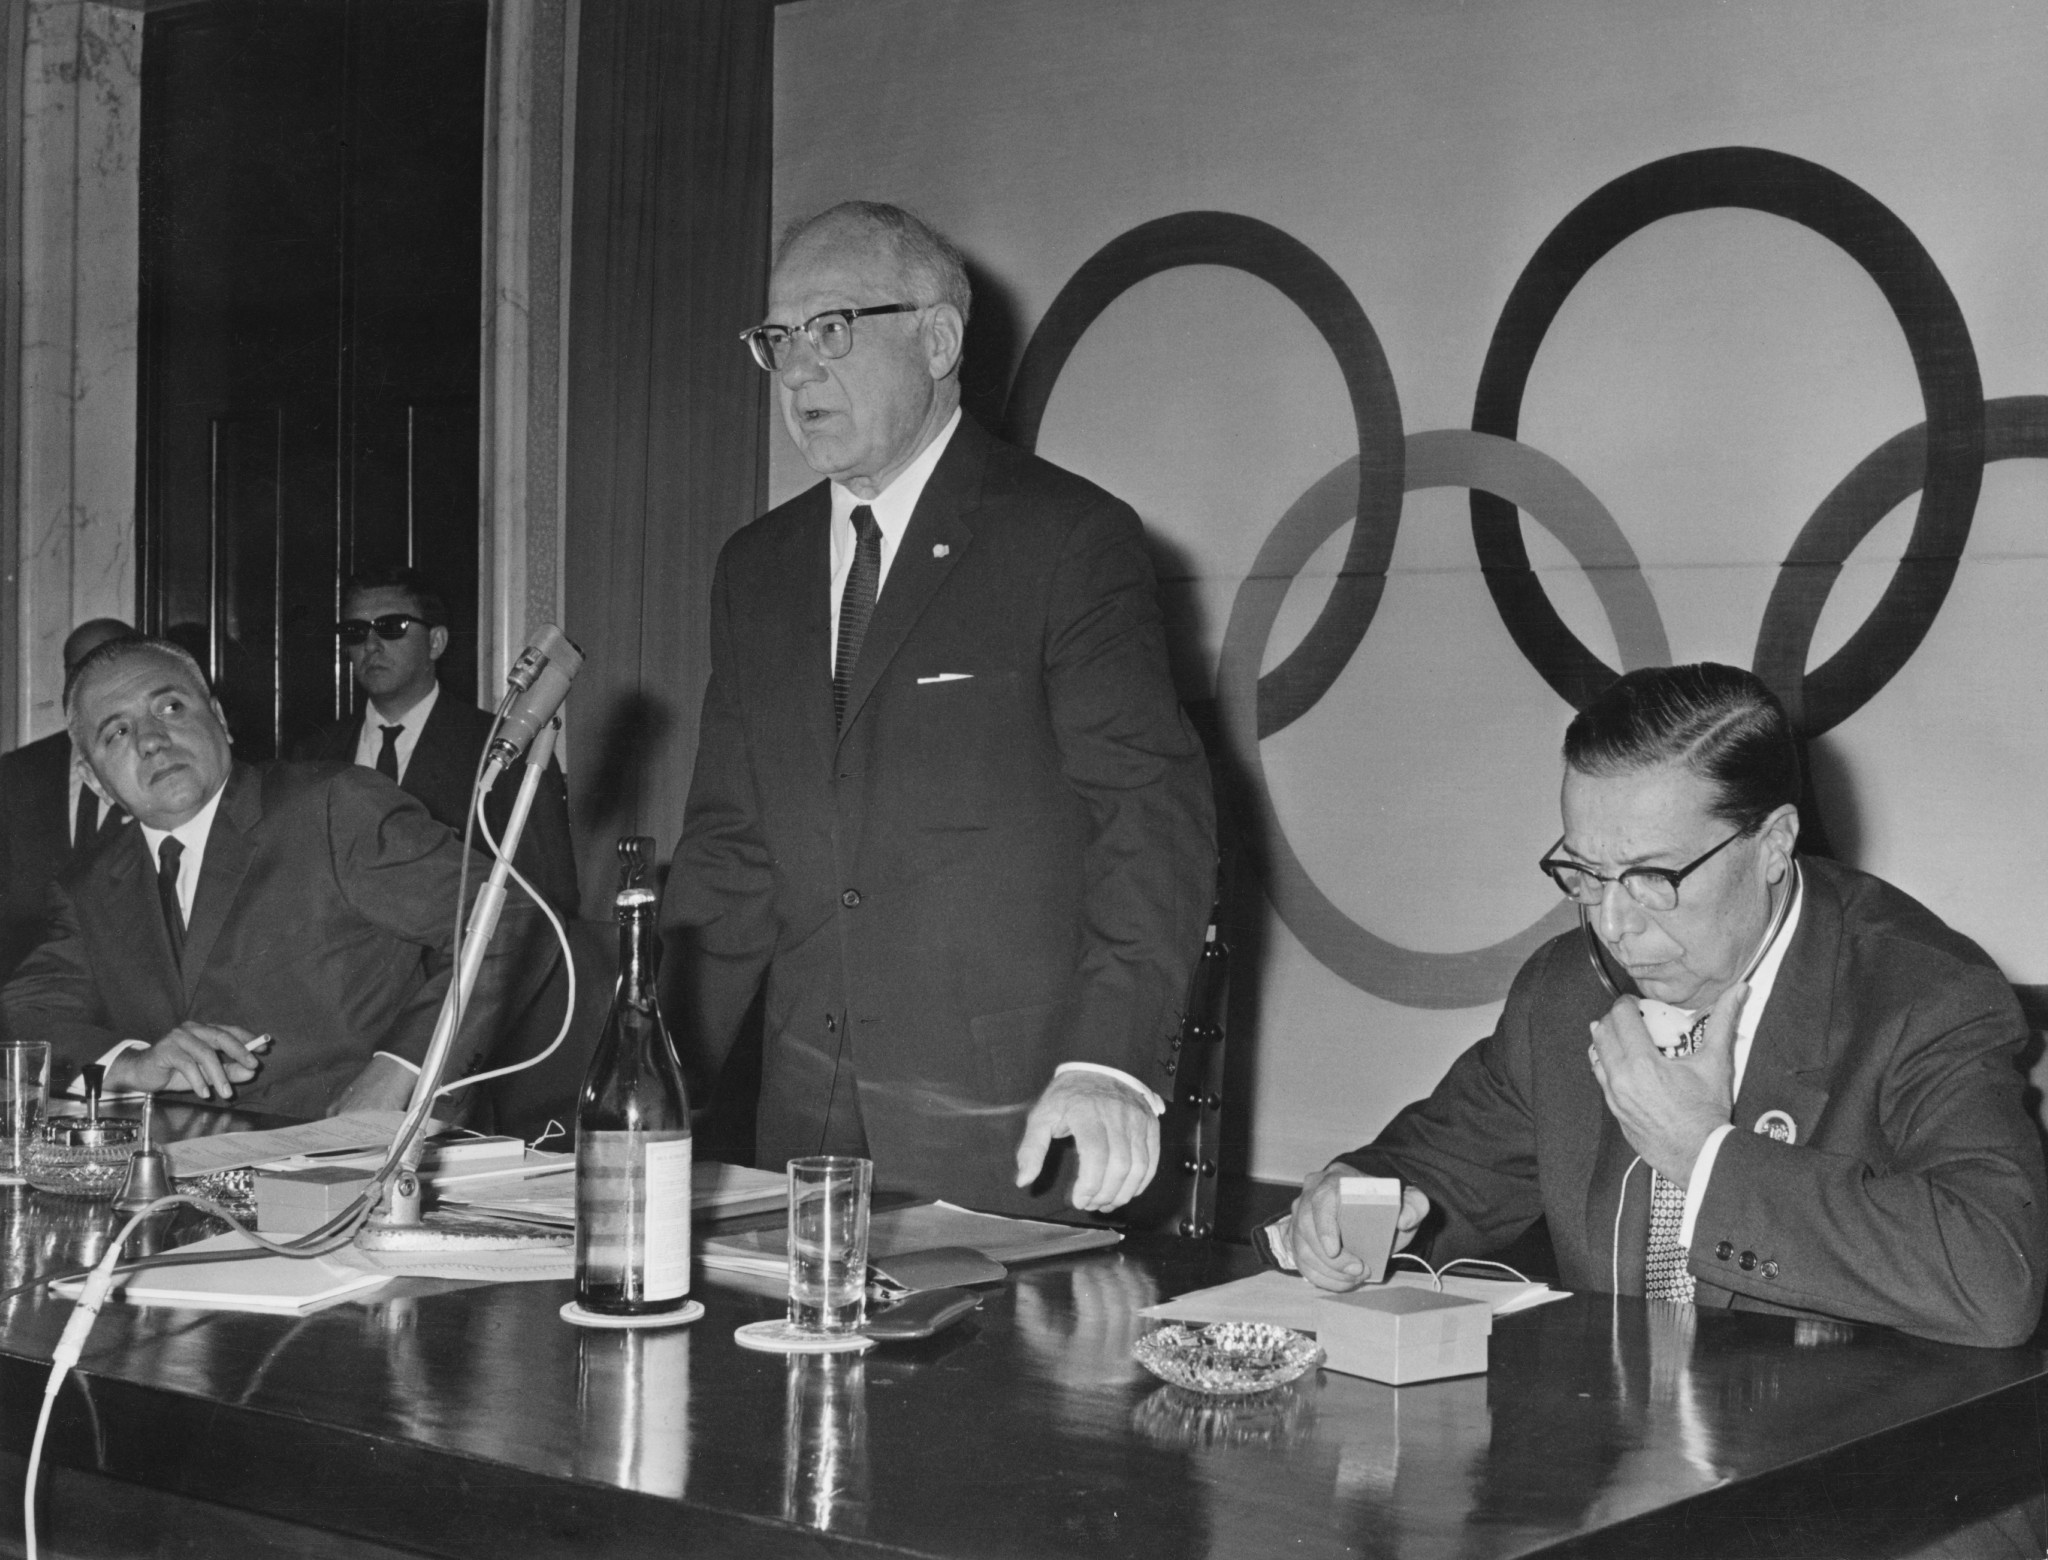 Former IOC President Avery Brundage resisted professional athletes throughout his tenure ©Getty Images